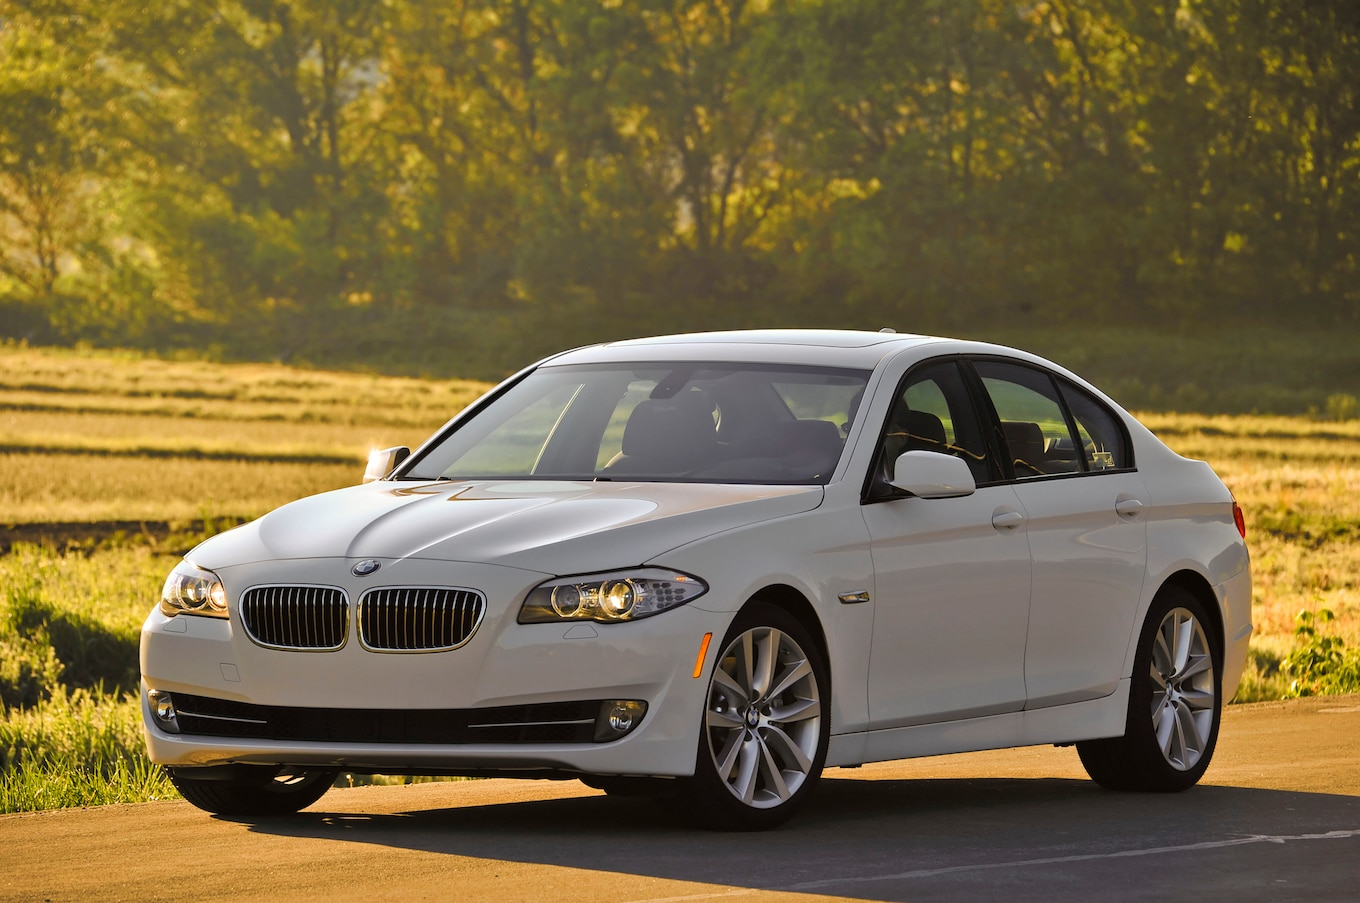 hight resolution of 2013 bmw 5 series reviews and rating motor trend 2013 bmw 535xi wire 2013 bmw 535xi